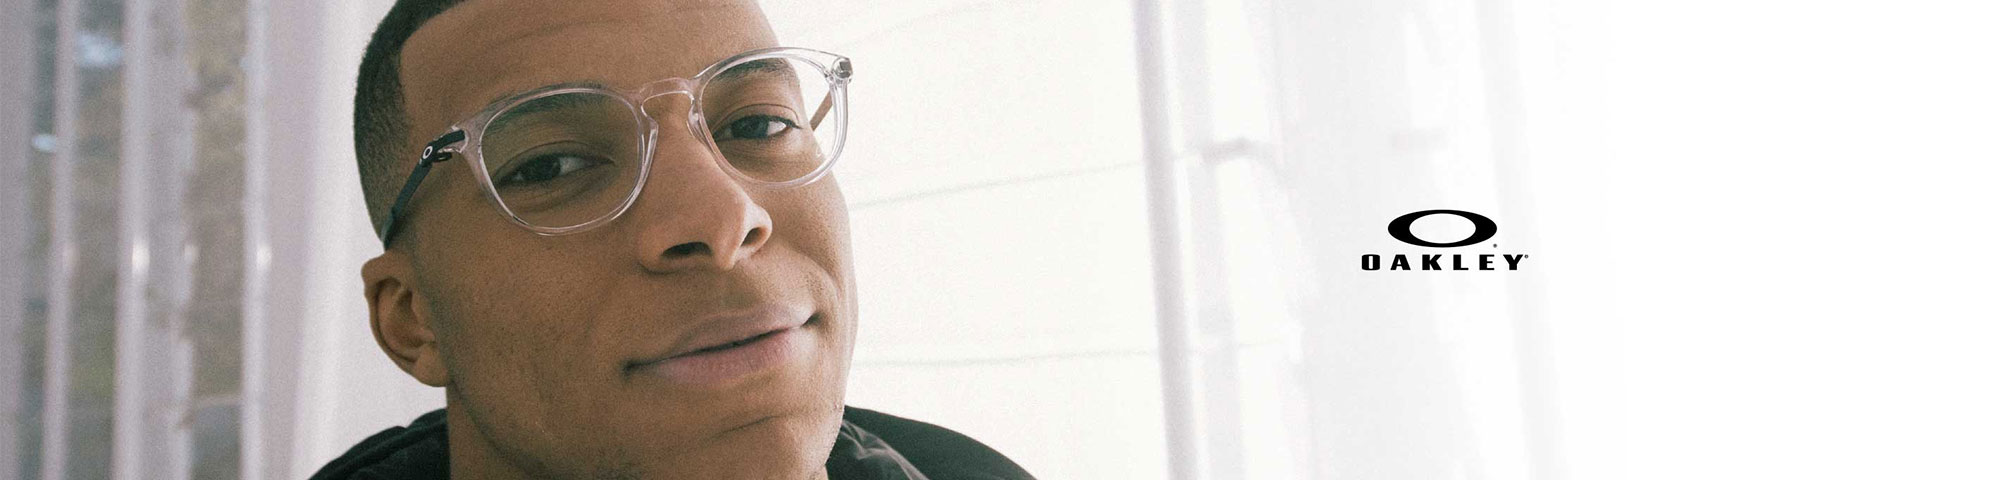 Oakley Lizard Prescription Glasses